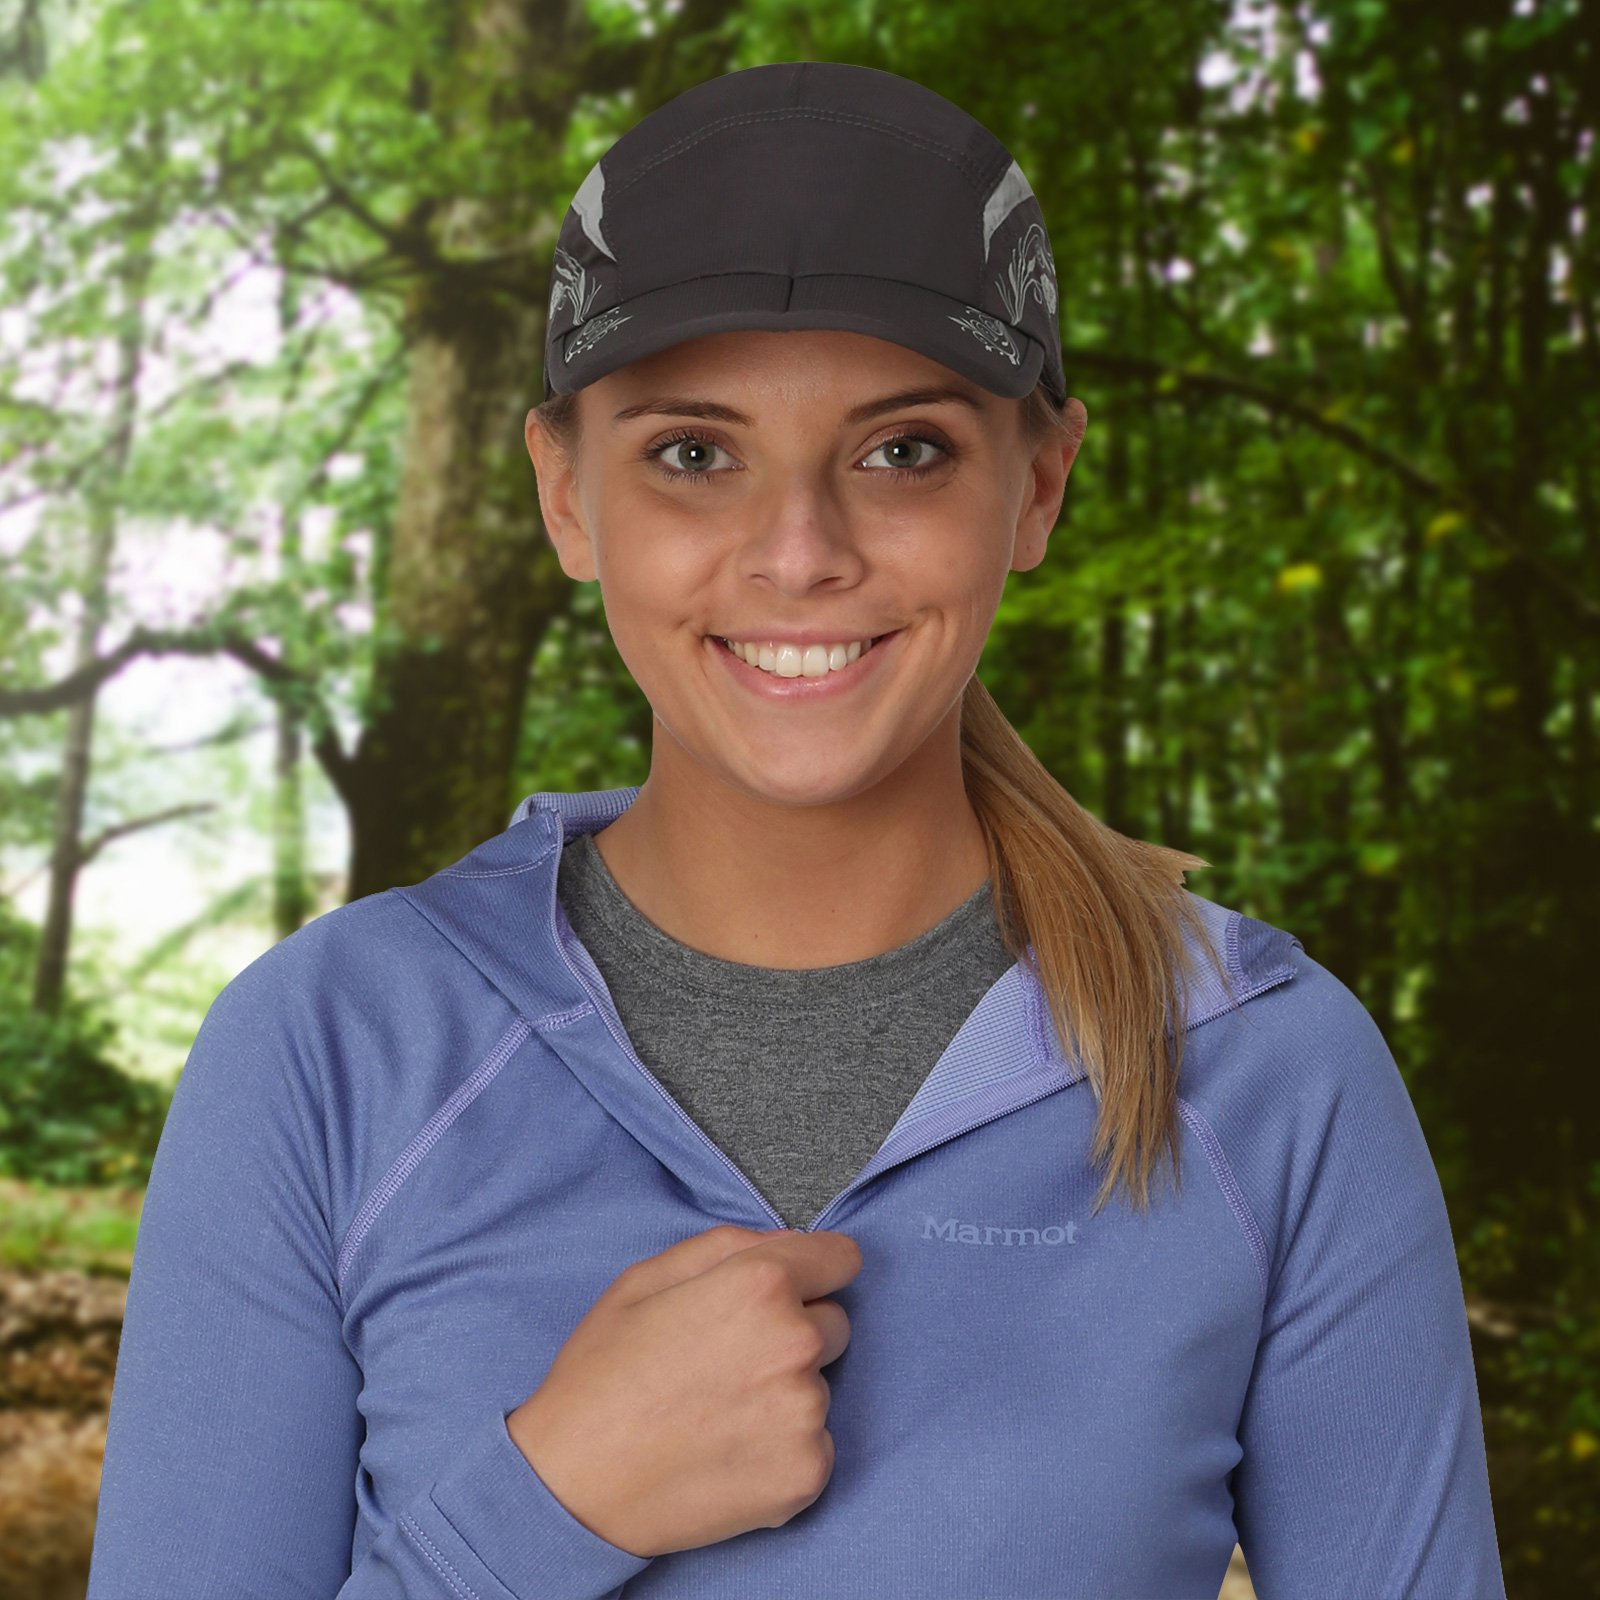 TrailHeads Lightweight Travel Hat | Summer Running Cap for Women | Folding Hat with UV Protection - Medium/Large by TrailHeads (Image #3)